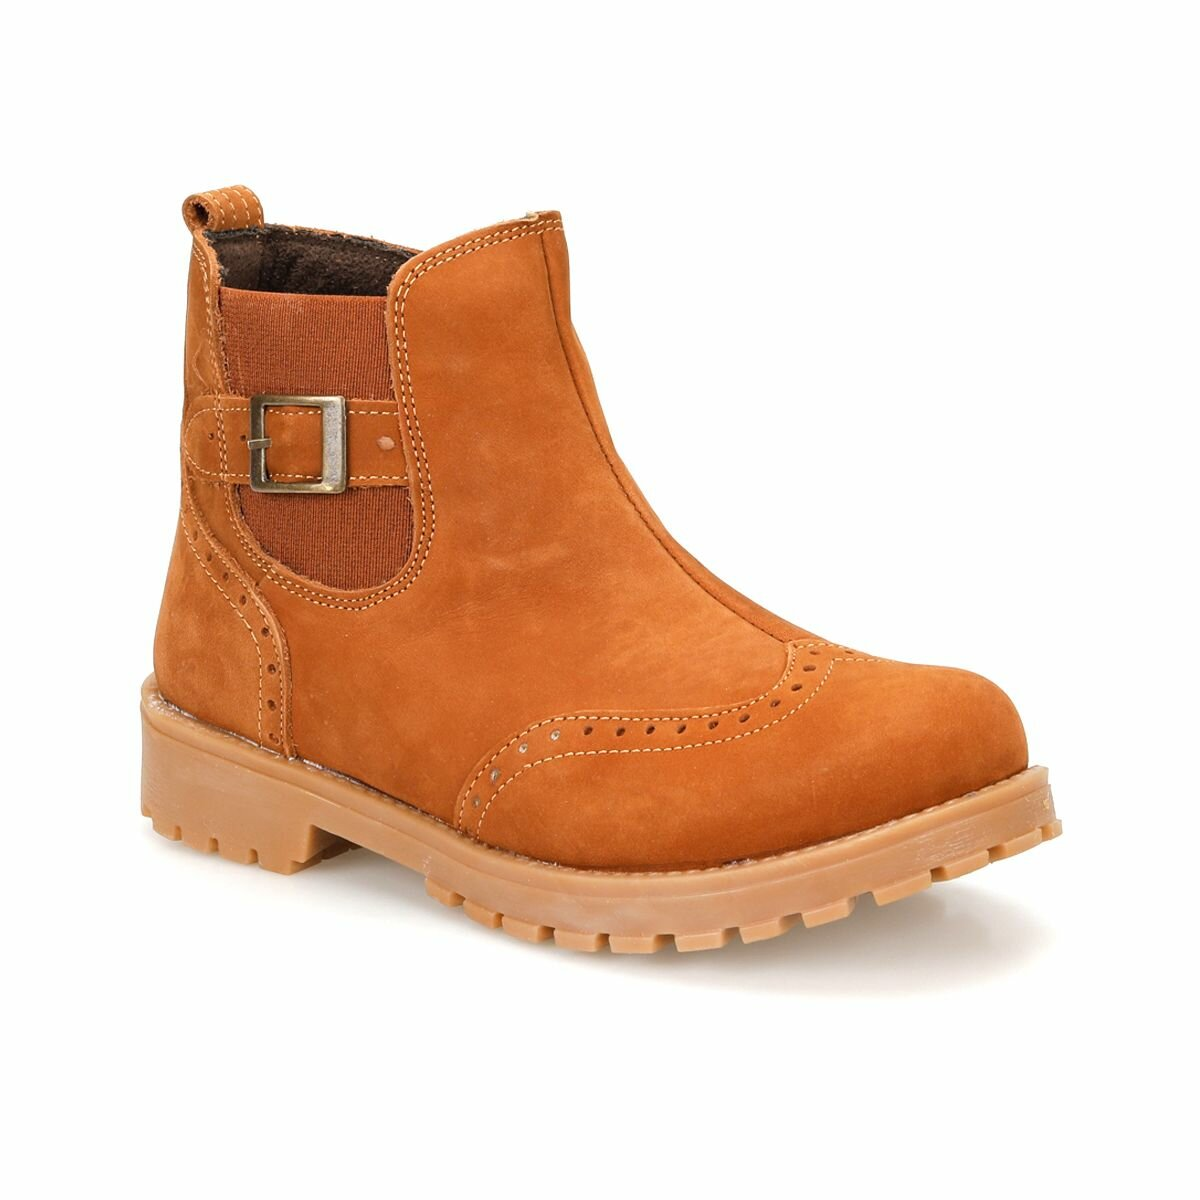 FLO 82.510625.F Brown Male Child Boots Polaris